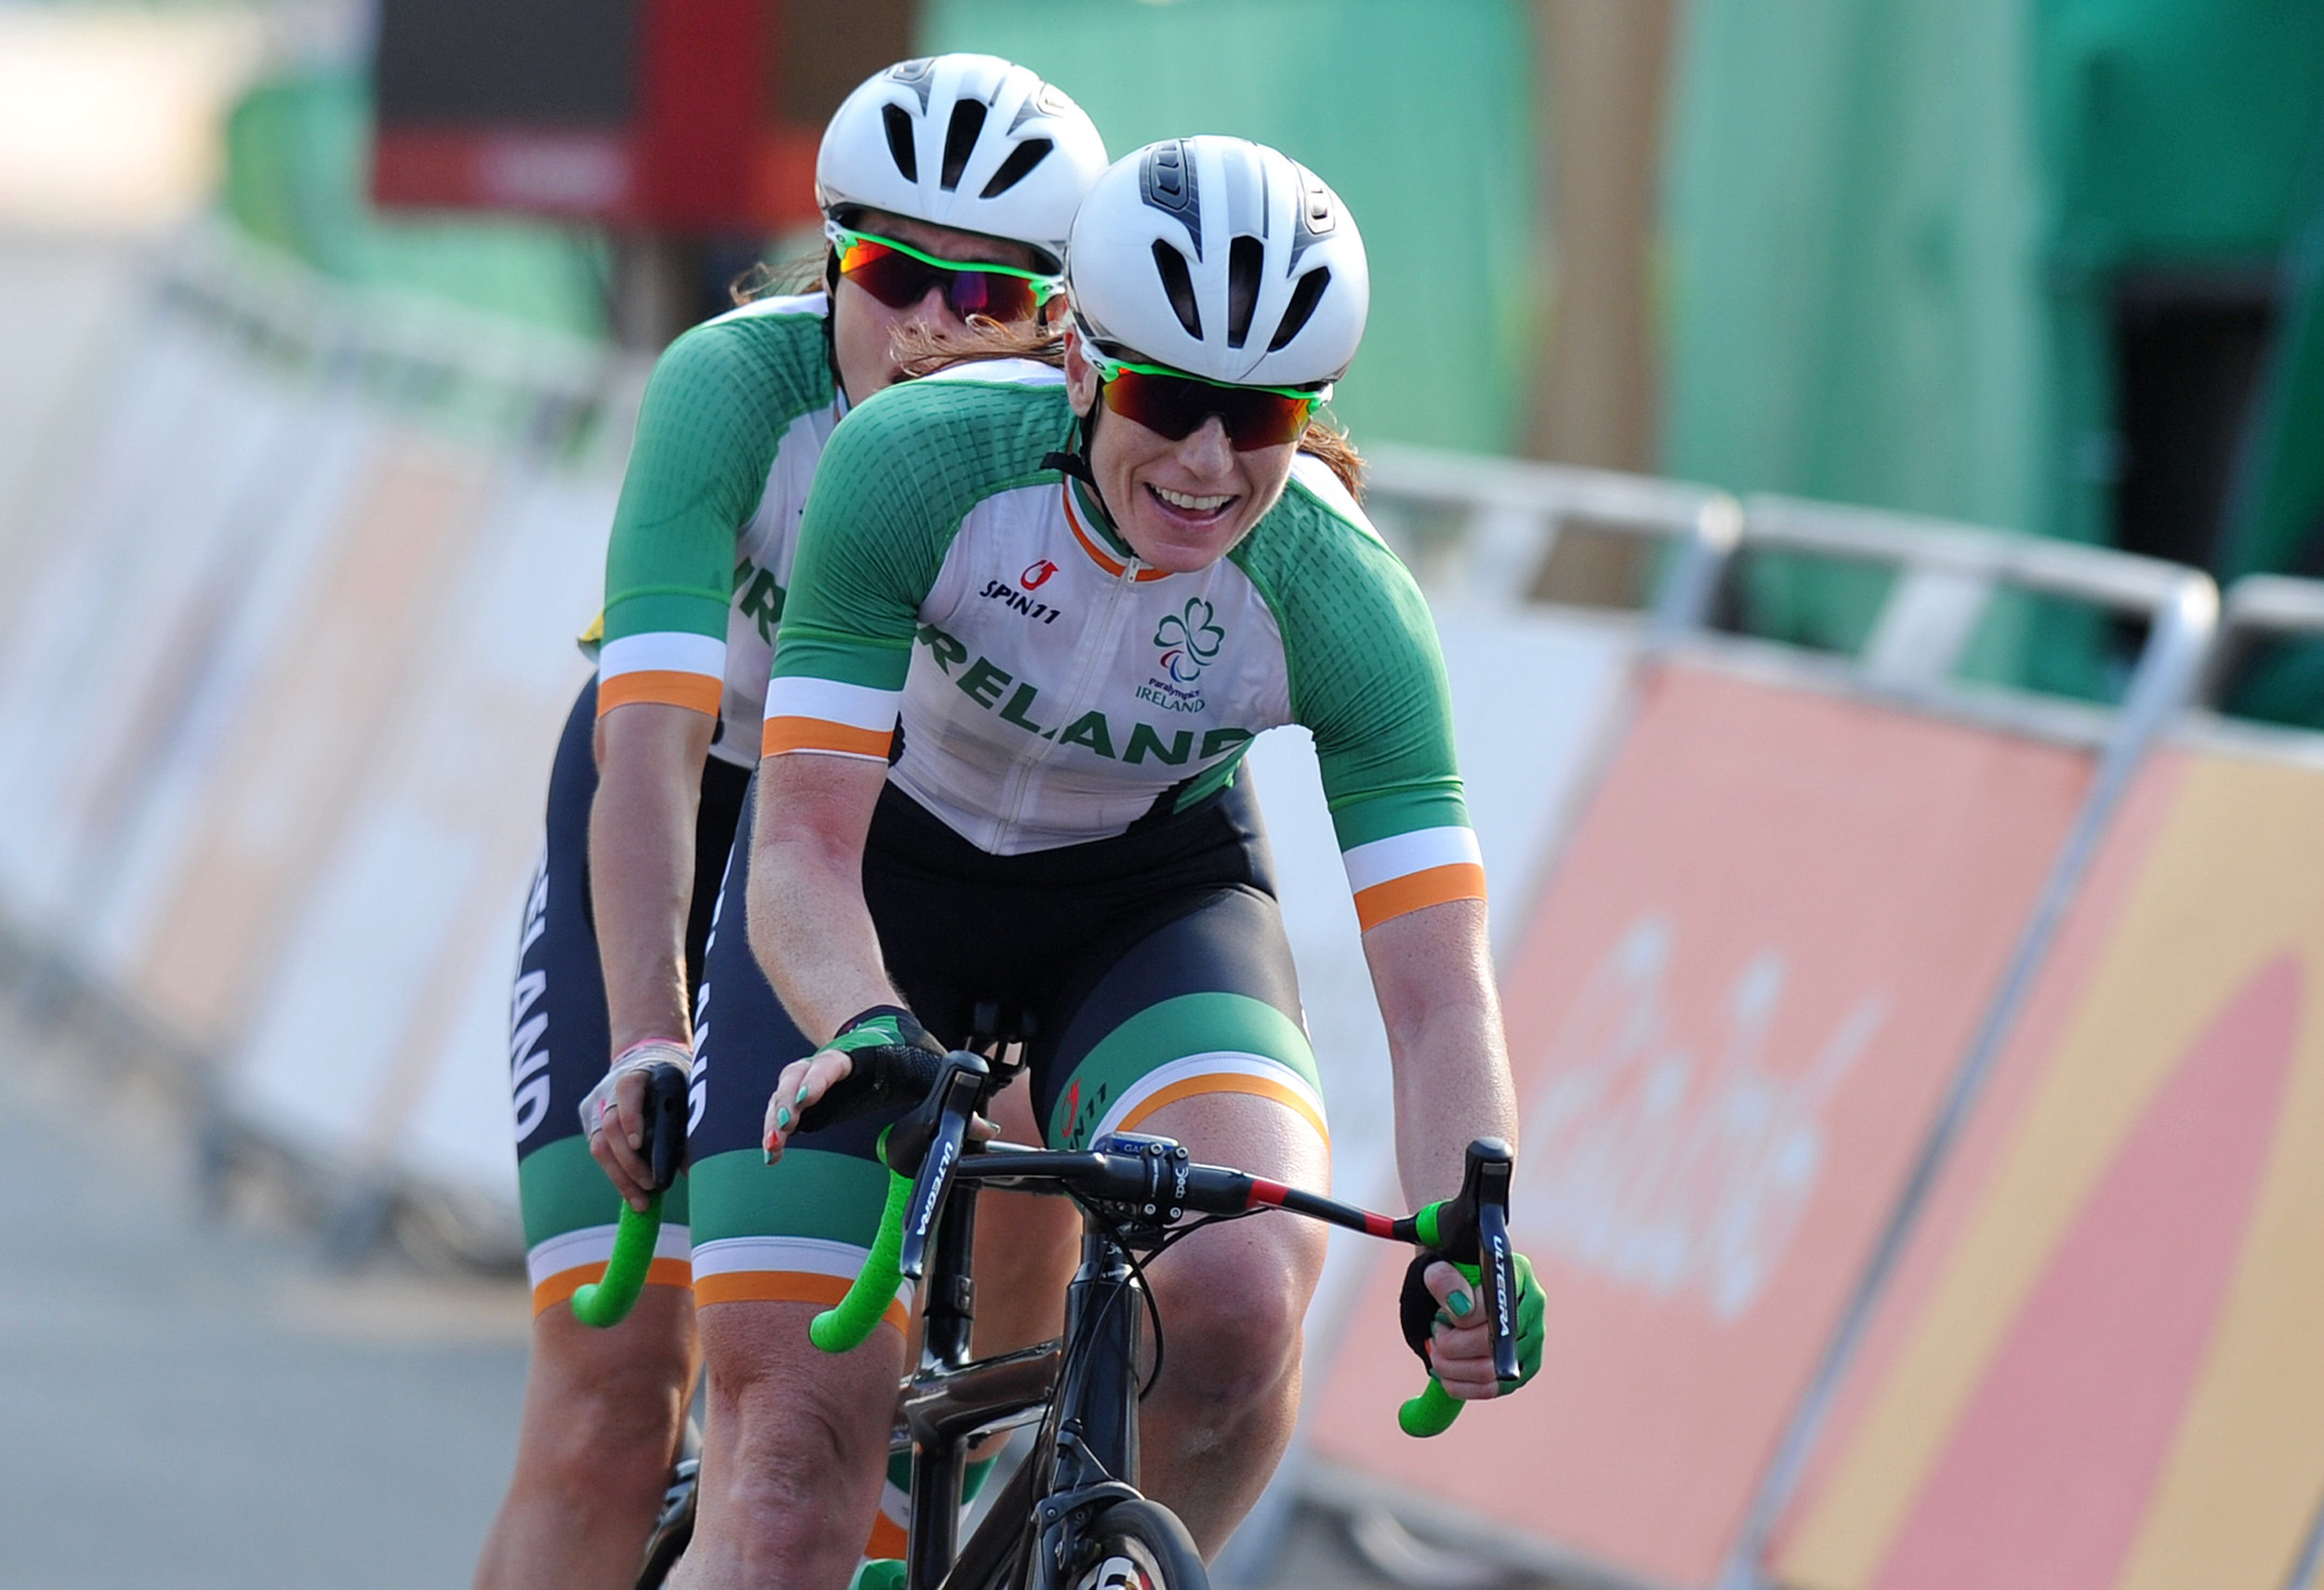 Cycling: Katie-George Dunlevy and Pilot Eve McCrystal complete in the Women's B Road Race